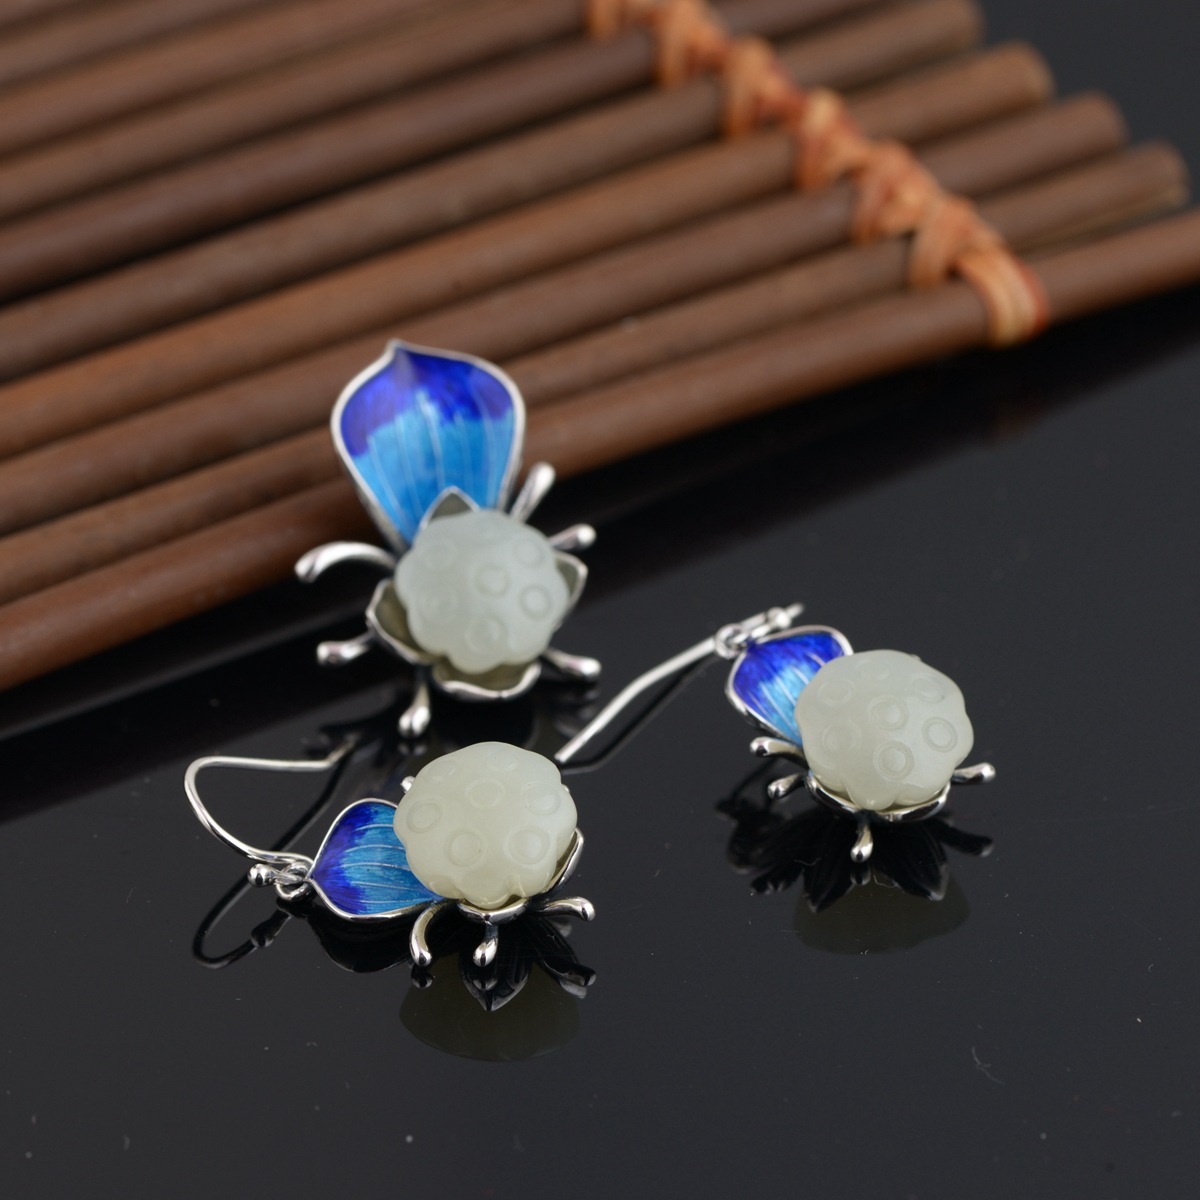 Hetian Jade Pendant Mana Burn Thai Silver Wholesale S925 Pure Silver Inlay Earrings Delicate Female M2018y Gifts s925 pure silver personality female models new beeswax